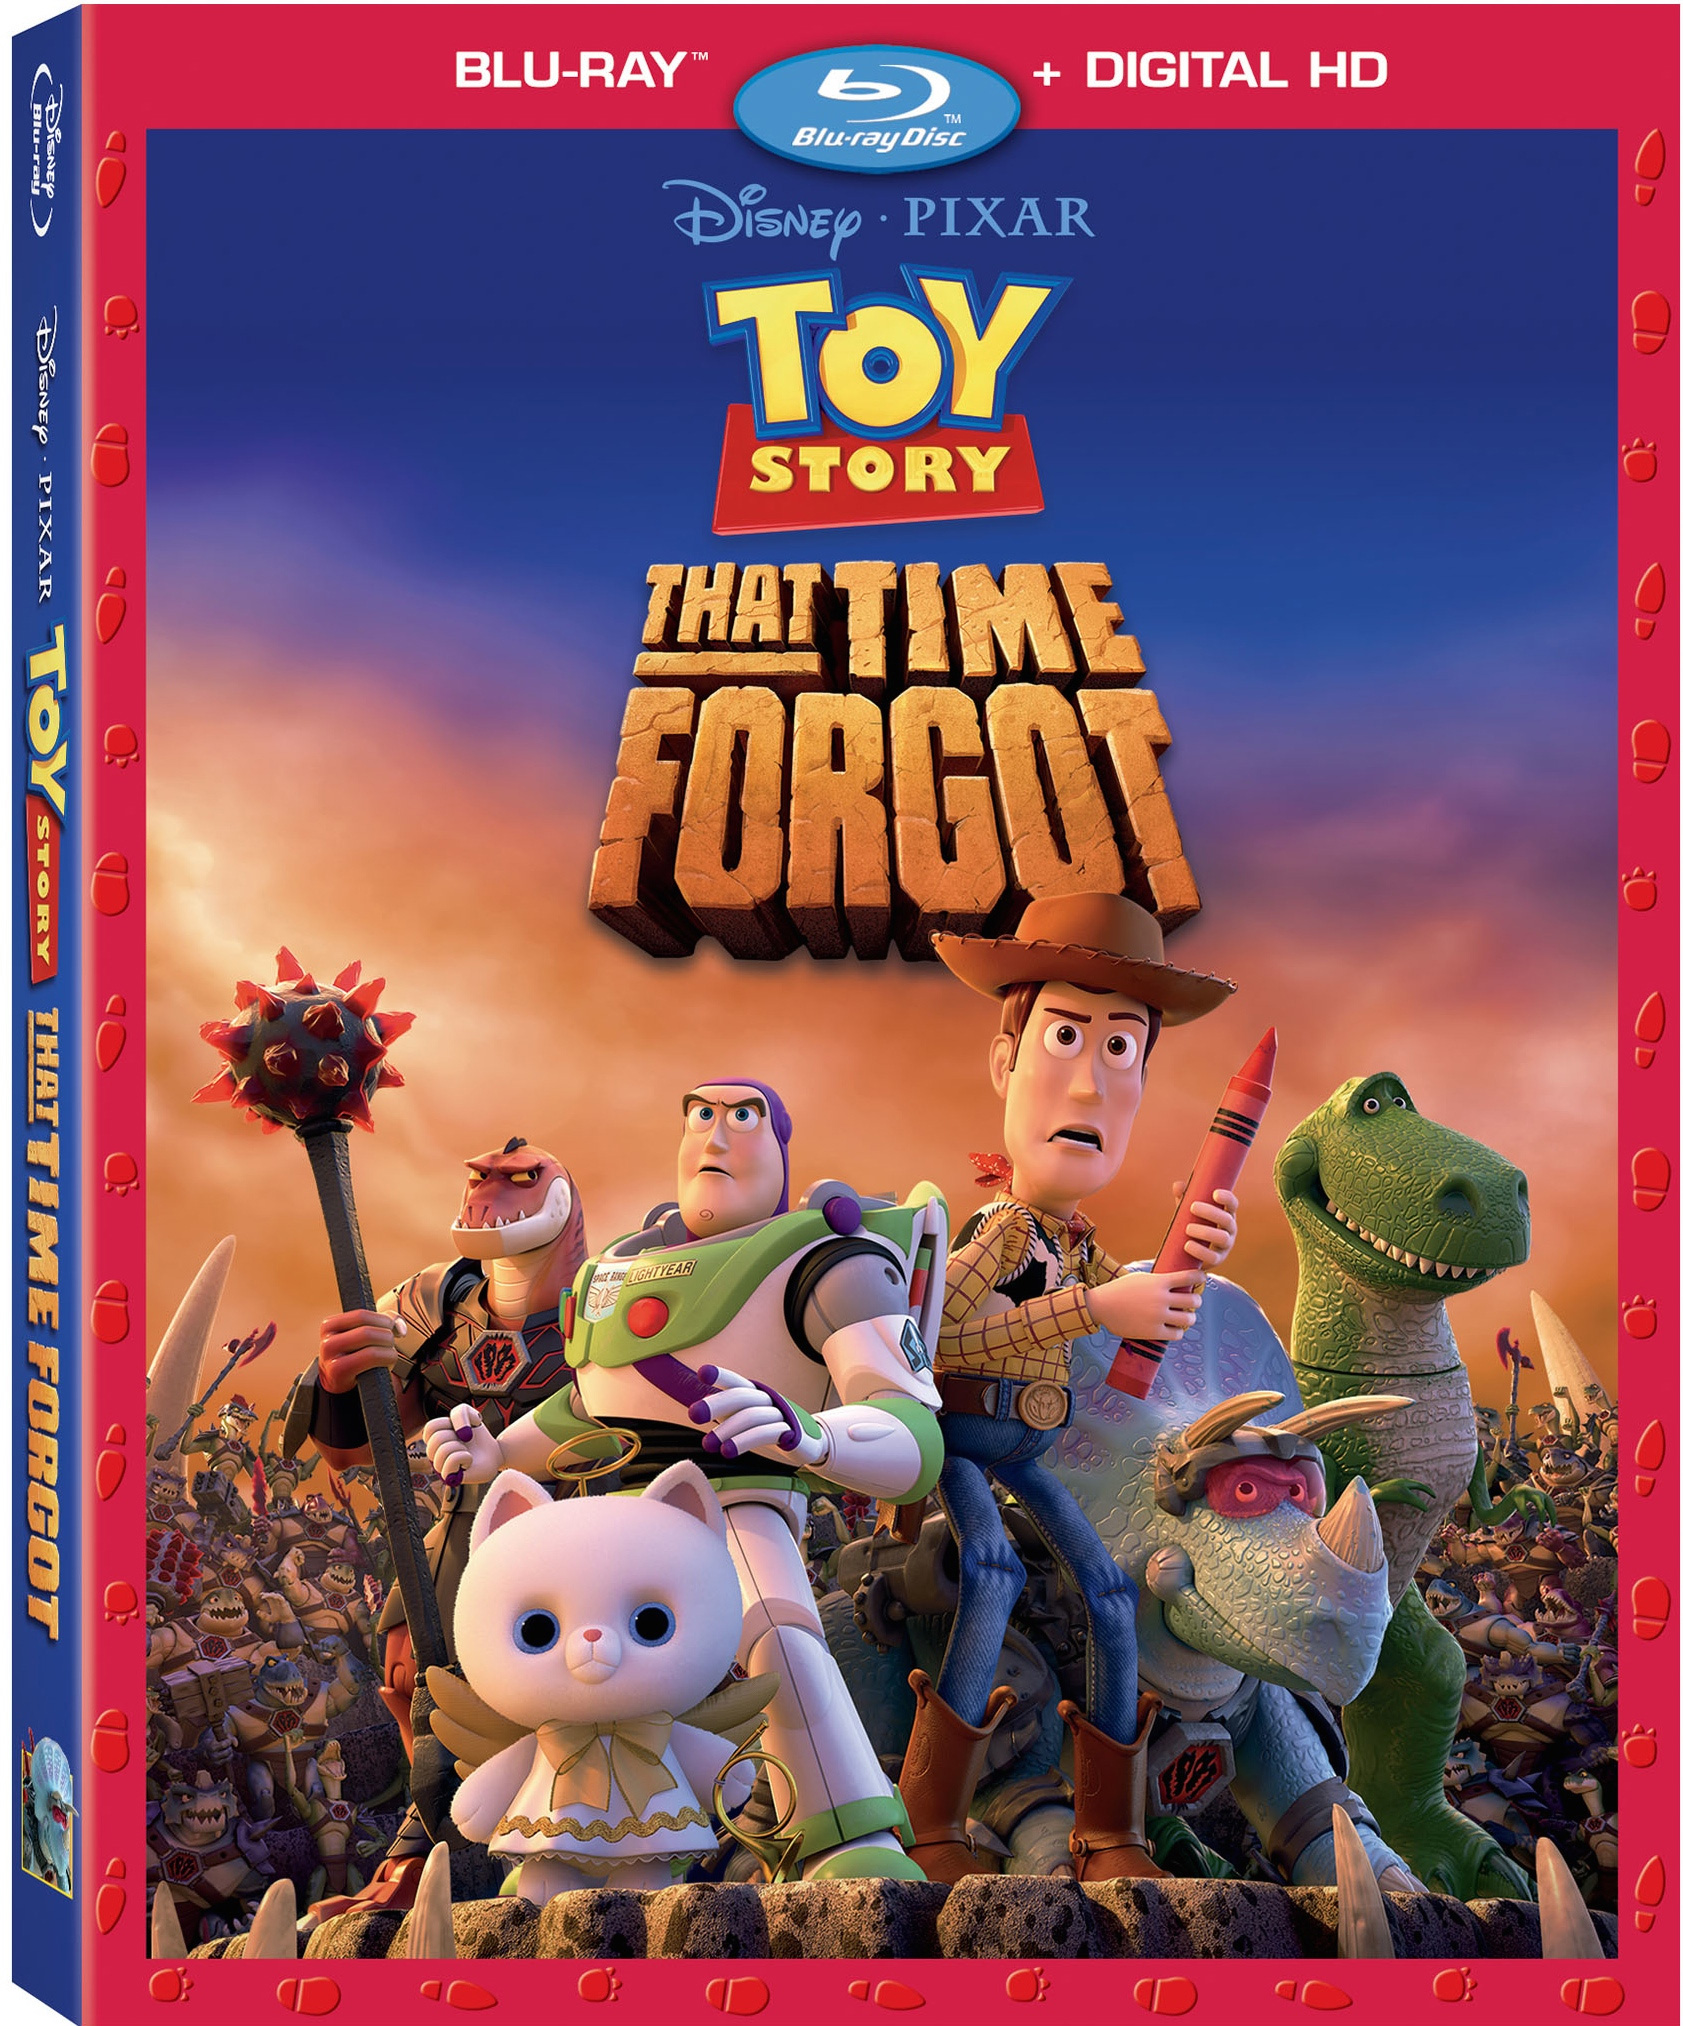 Toy story that time forgot blu ray dvd and digital for Toy story 5 portada